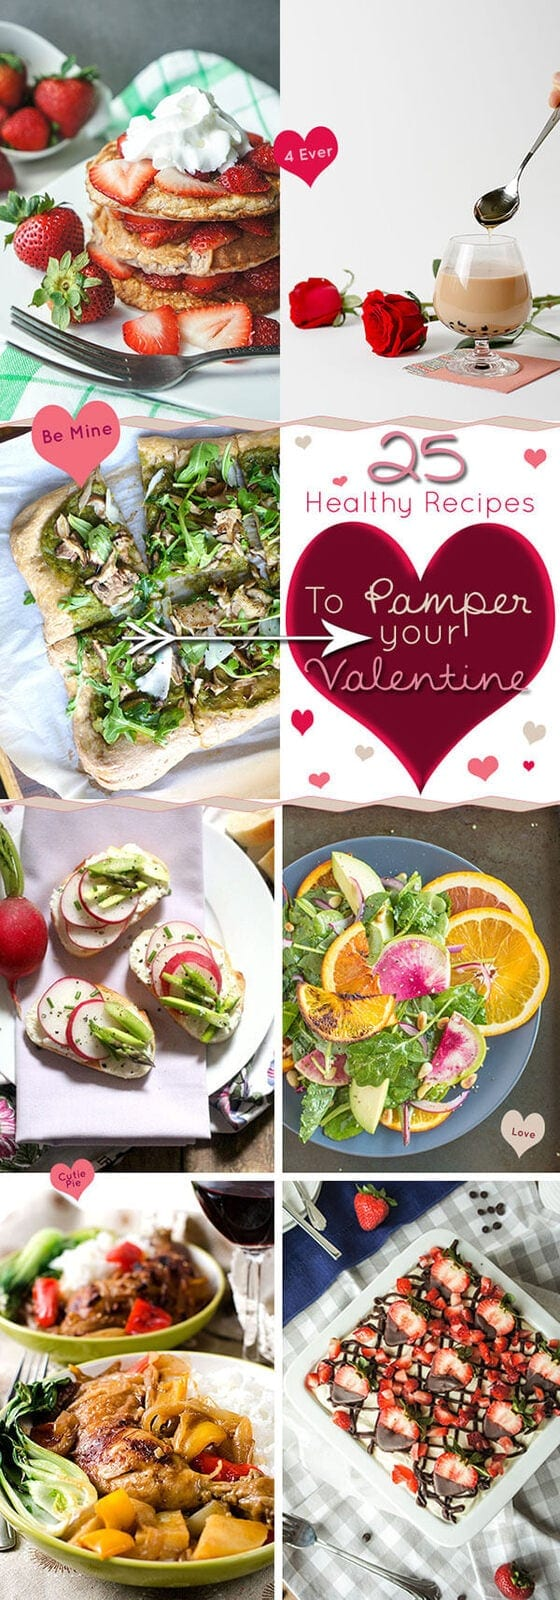 25 Healthy Valentine S Day Recipes